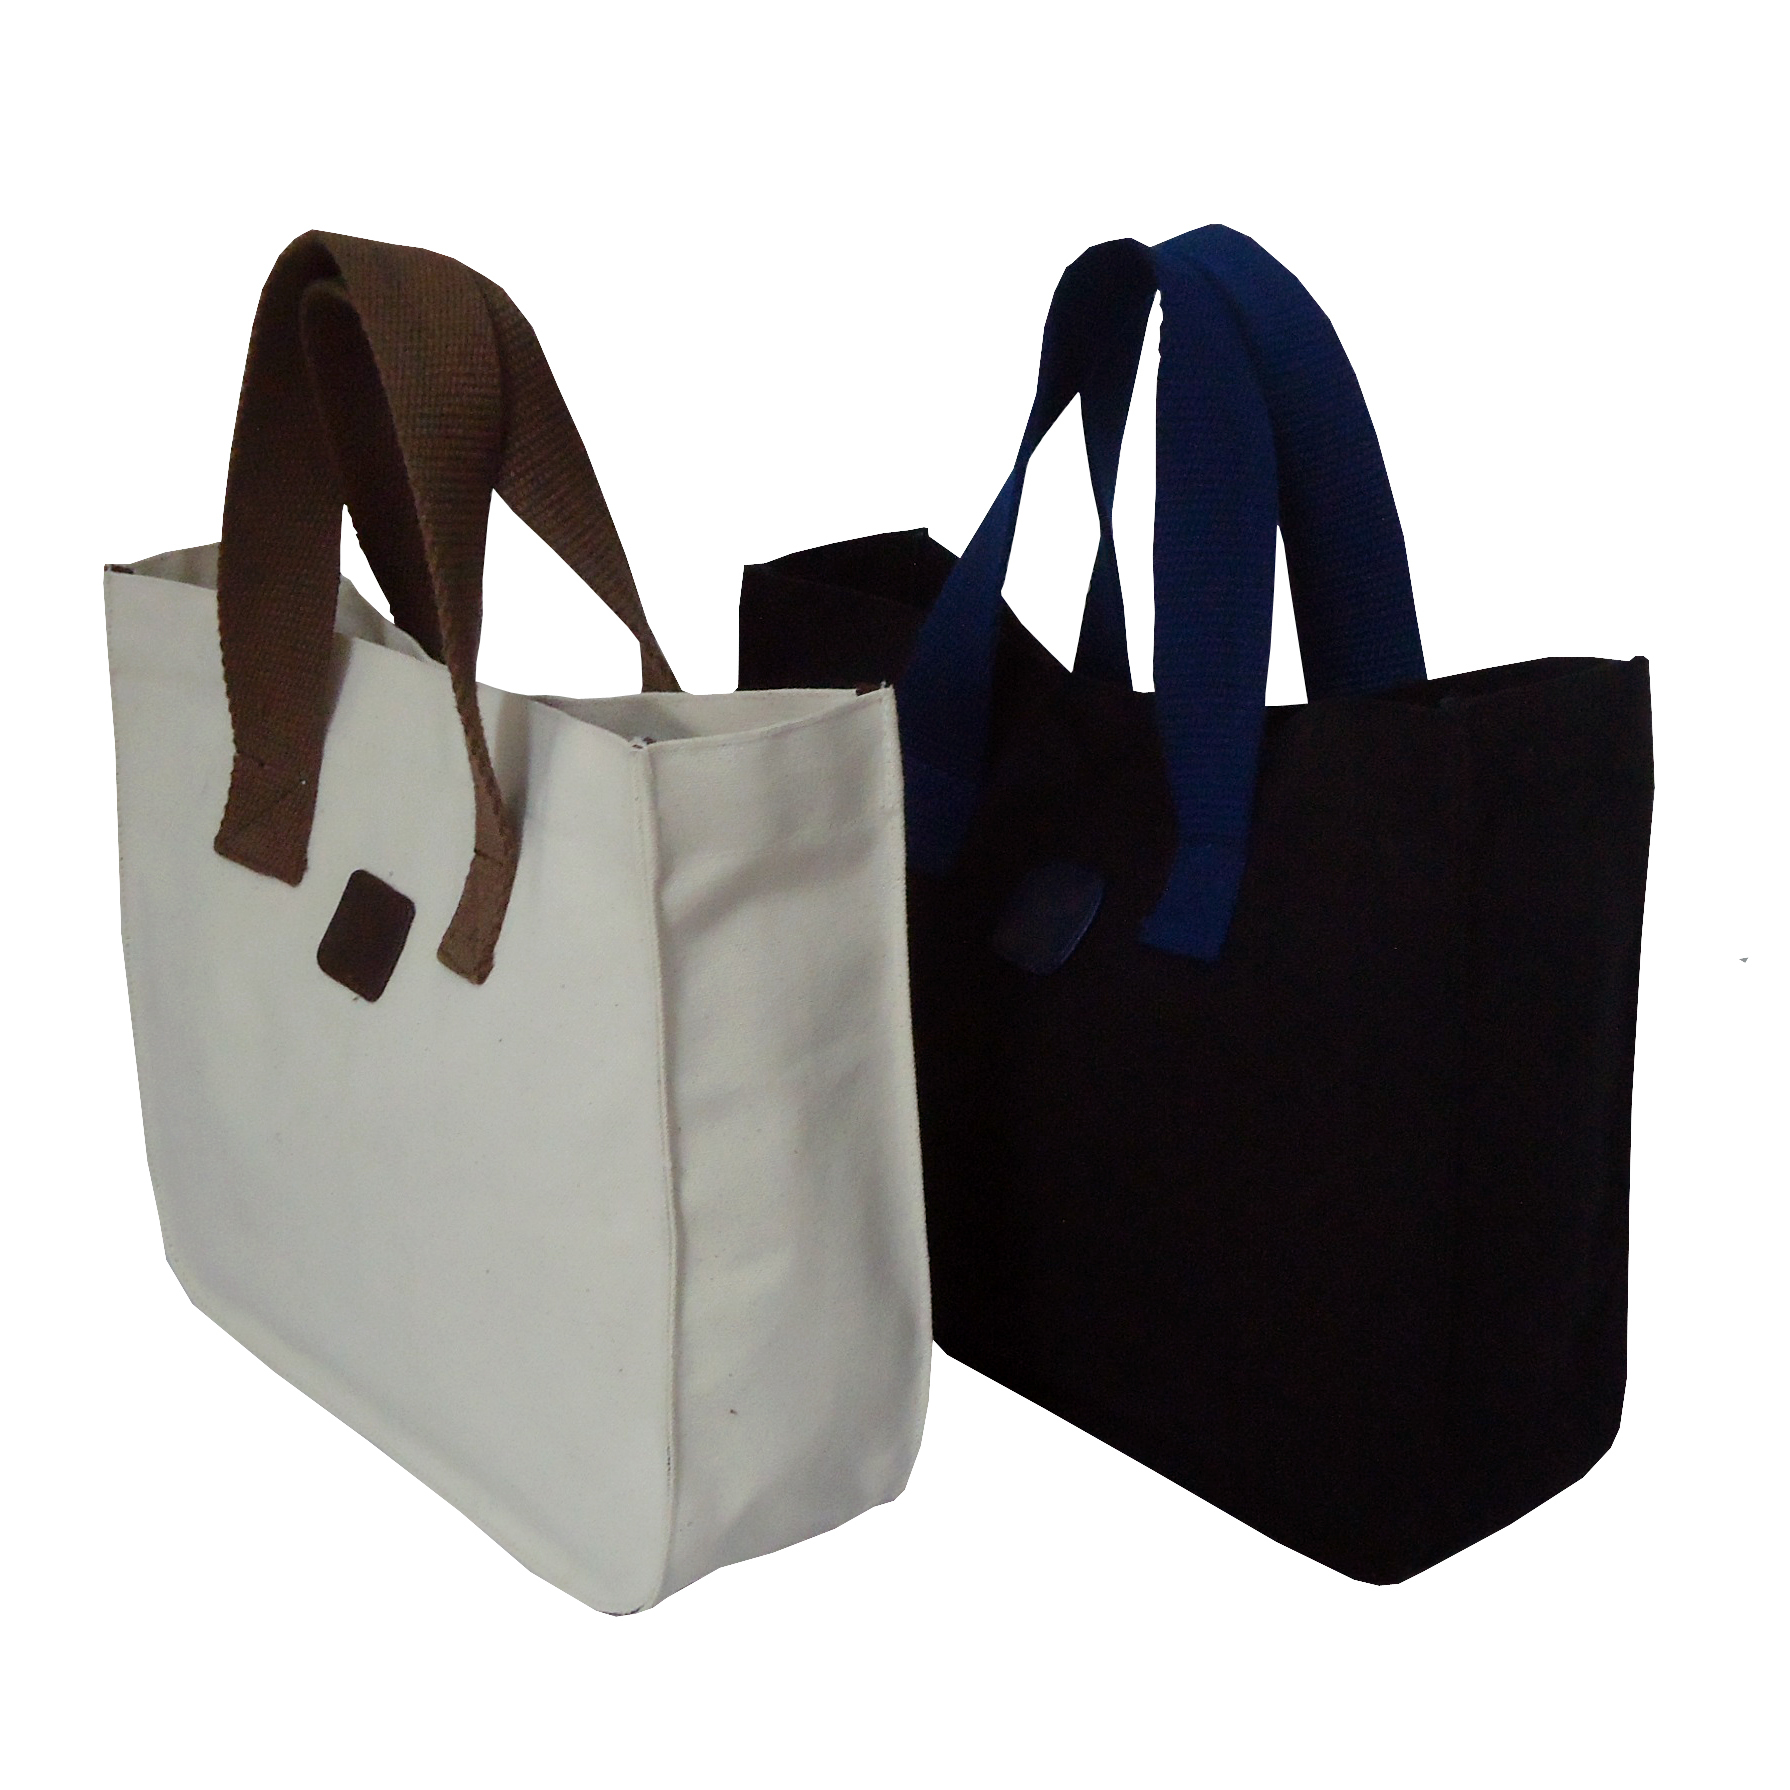 12 Oz Natural & Dyed Canvas Tote Bag